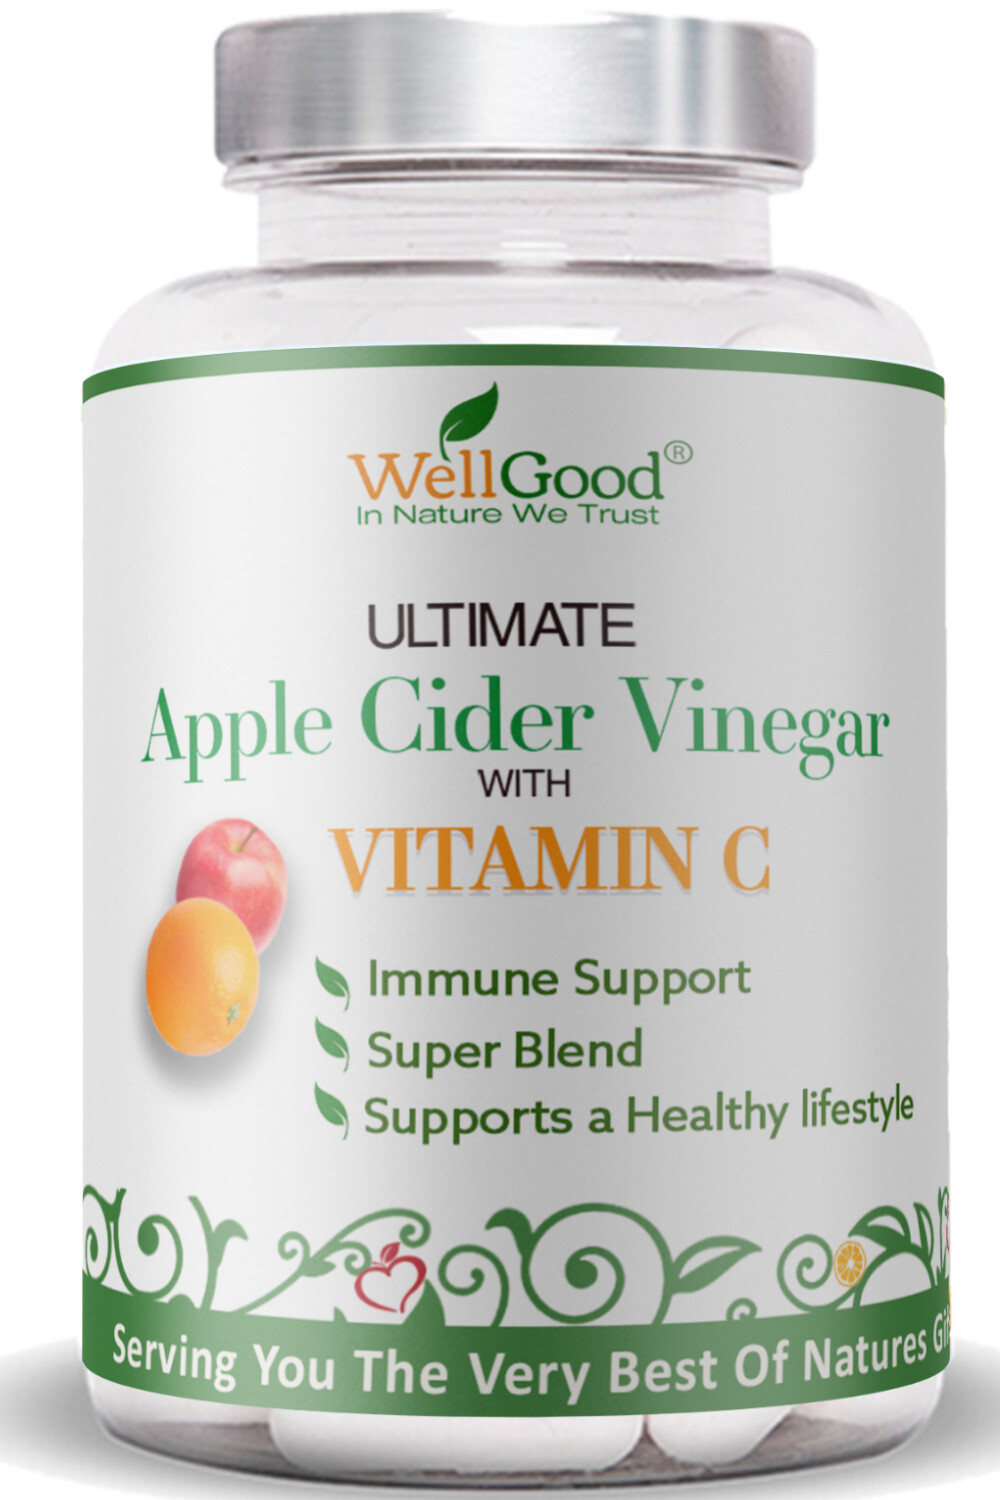 *PRE-ORDER NOW 26/6/20* Pure Apple Cider Vinegar with Vitamin C   6 Week Supply   Ultimate combination for your Immune system